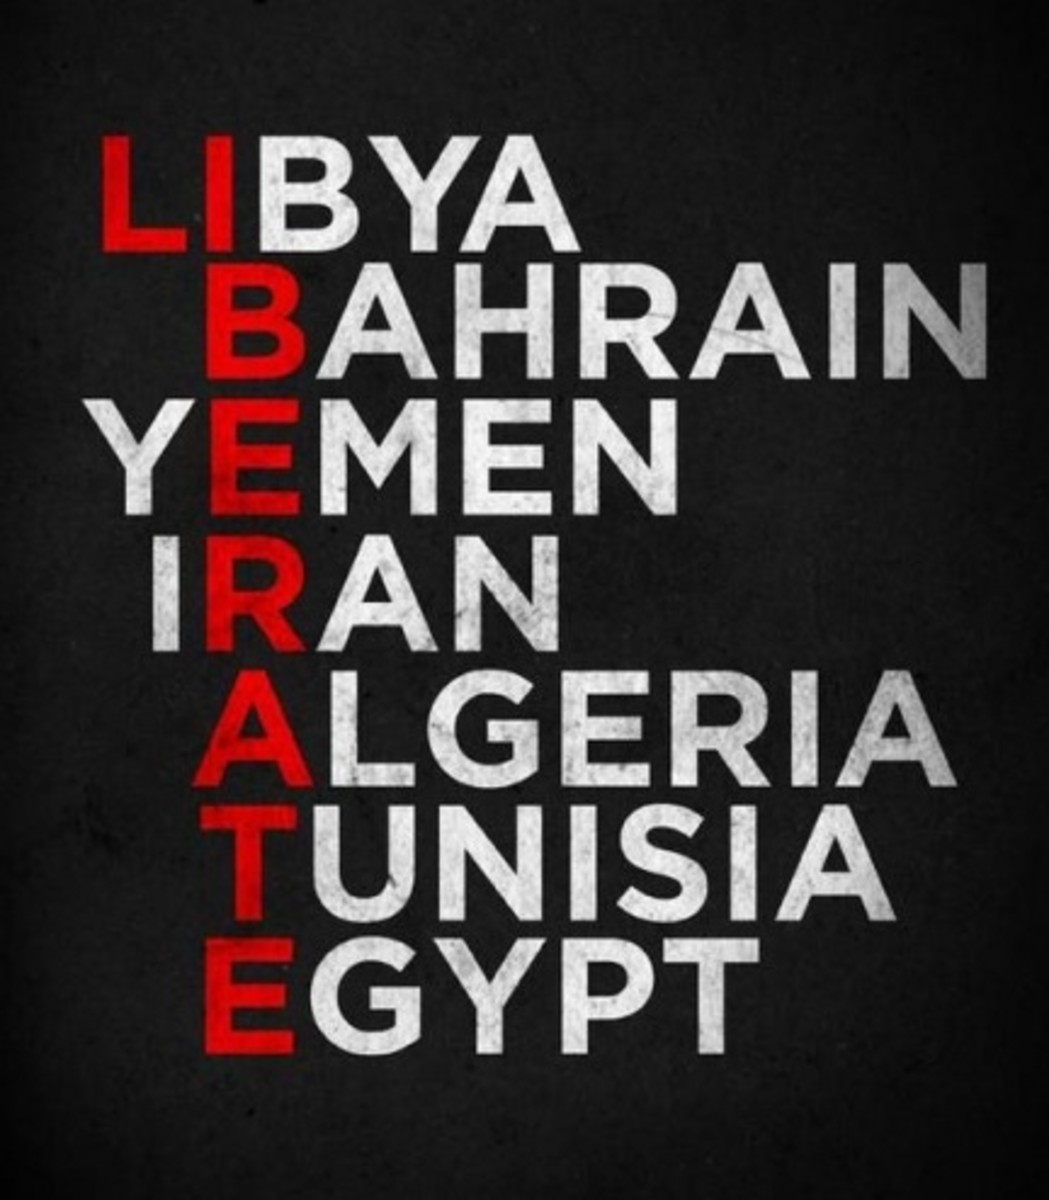 Liberate the oppressed Arab people in Africa and the Middle East as the sign read in red letters: LIBERATE